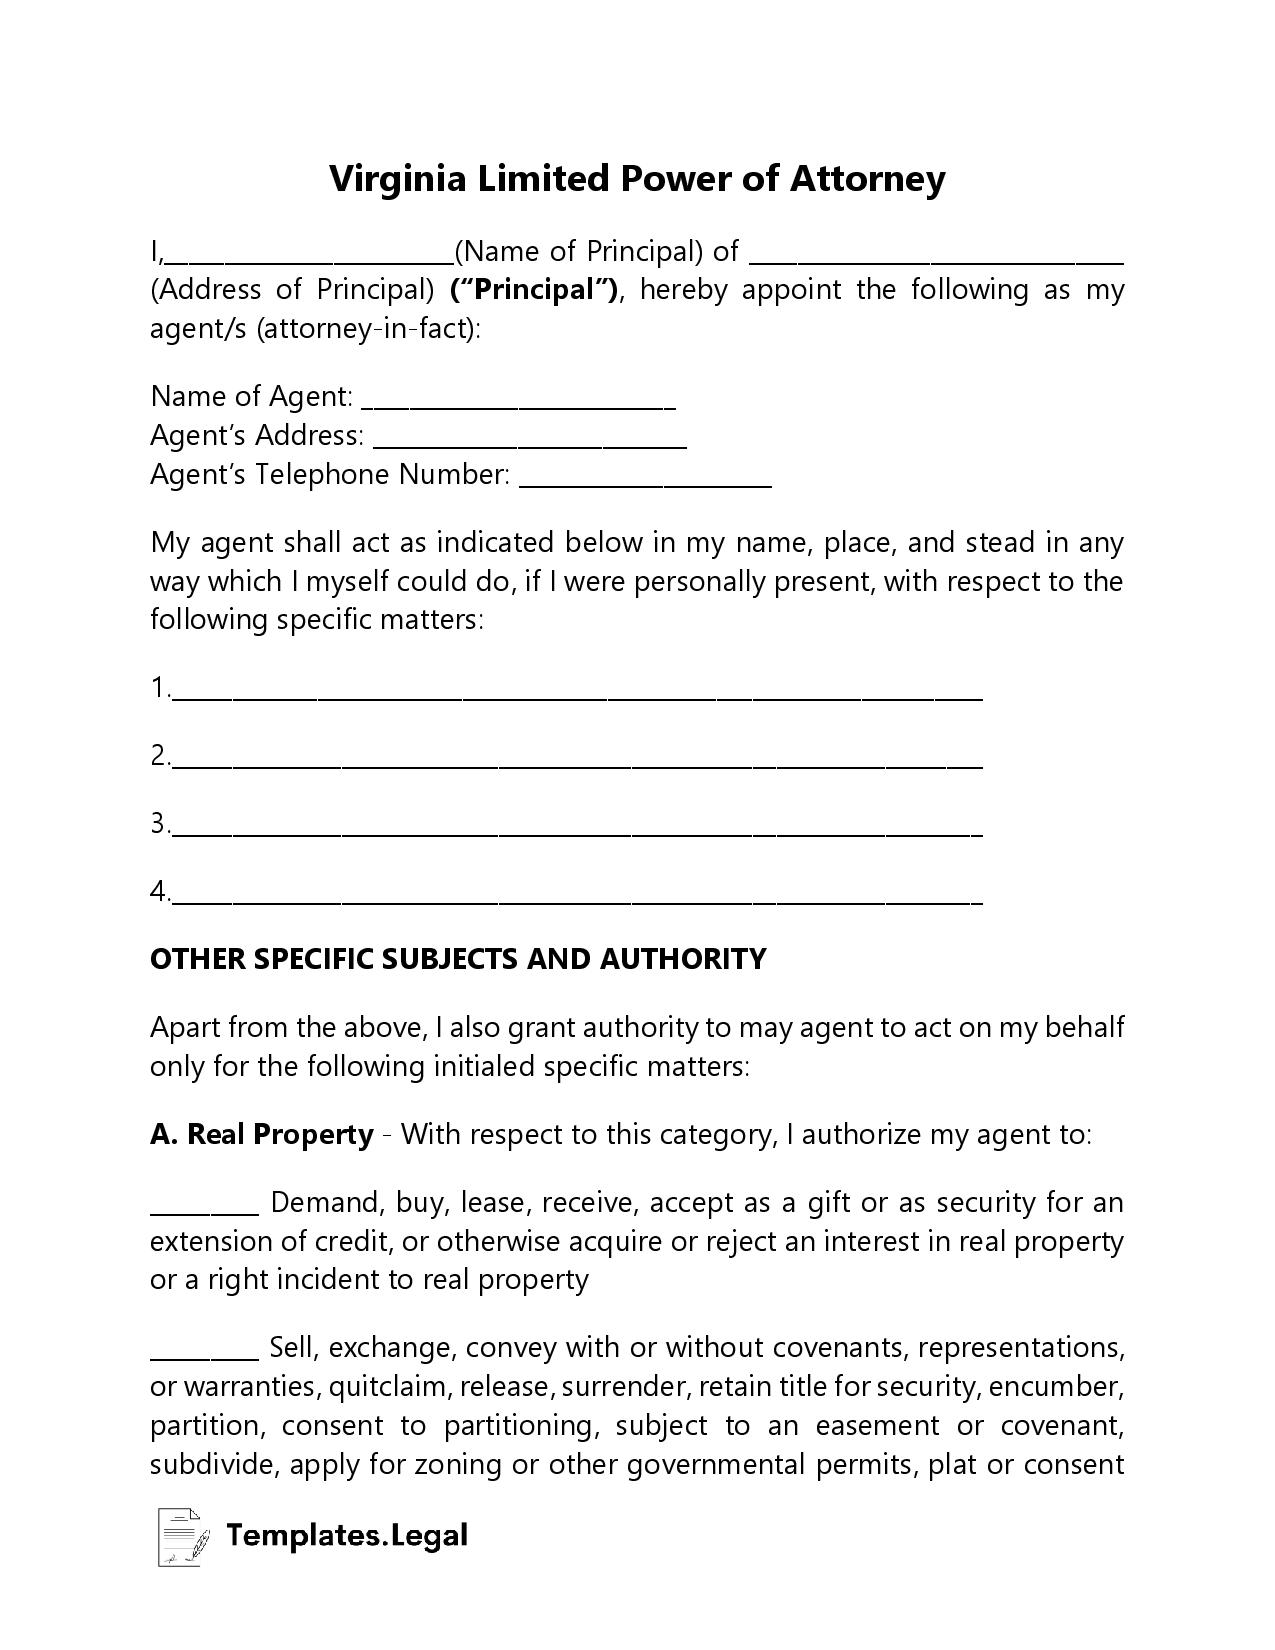 Virginia Limited Power of Attorney - Templates.Legal